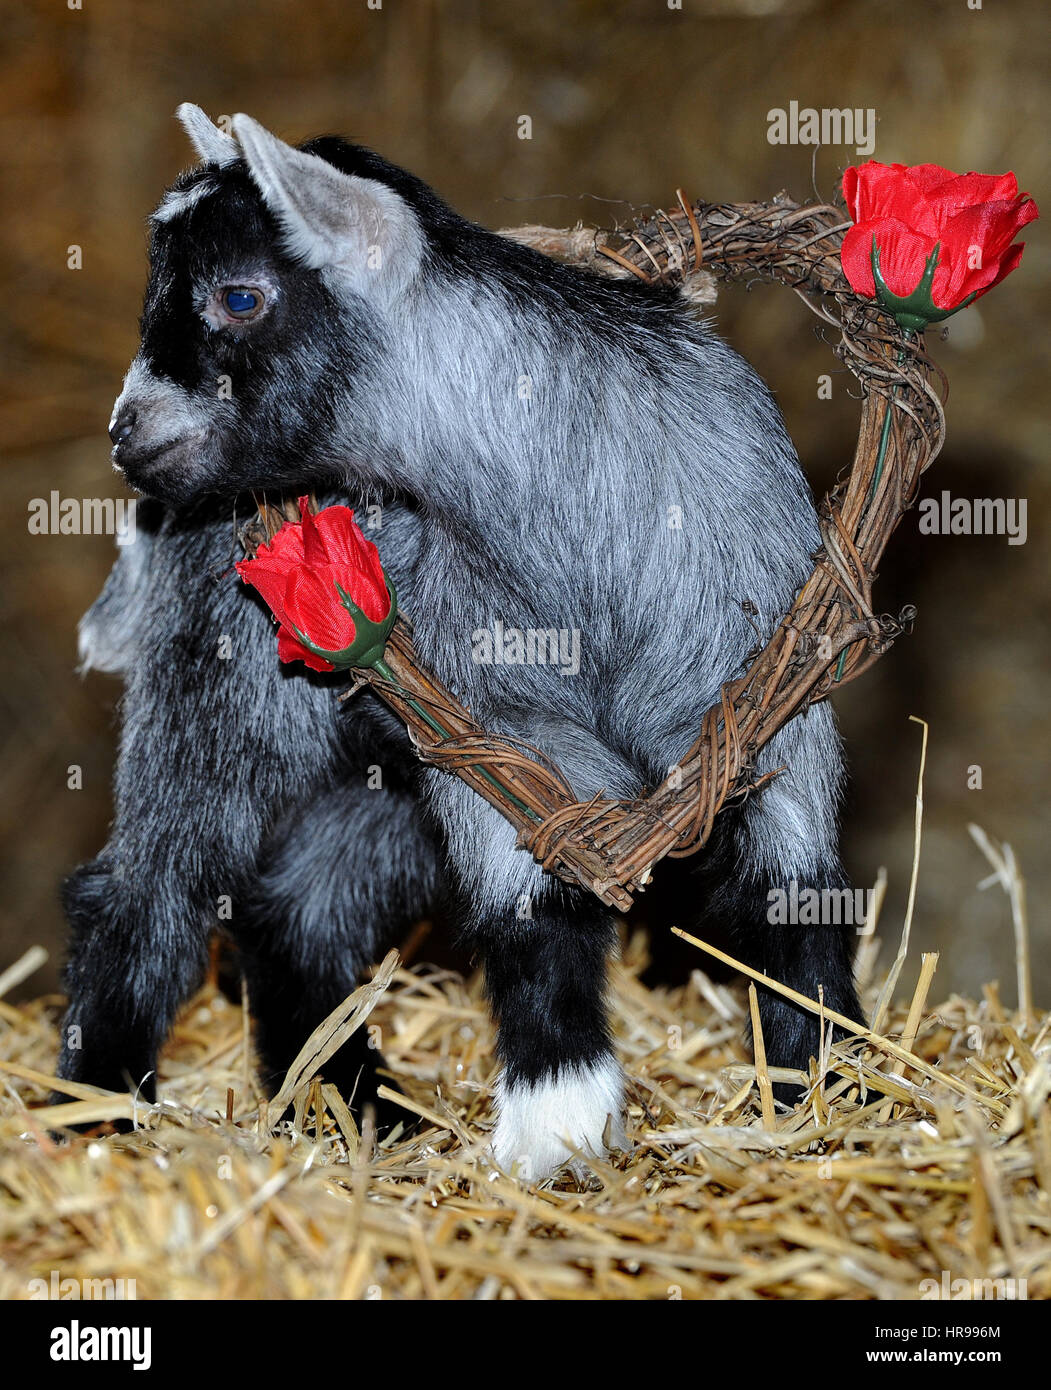 Love Is In The Air For St Valentine S Day At Smithills Open Farm In